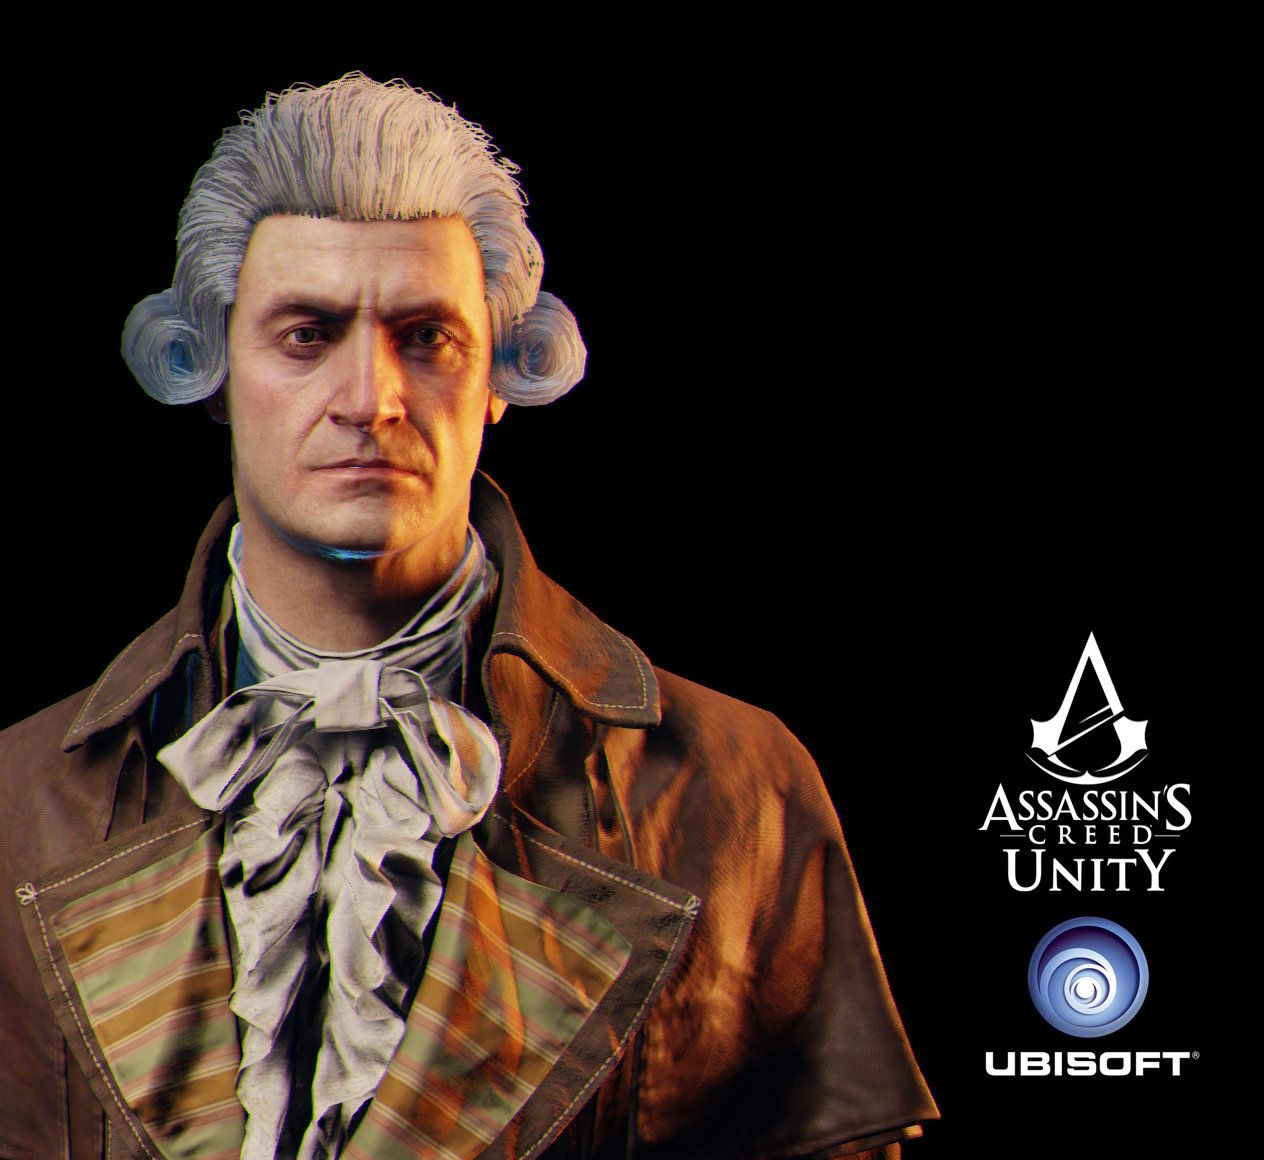 Assassin s creed unity review next available slot assassin s creed - Assassin S Creed Unity Robespierre Charles Lim On Artstation At Https Www